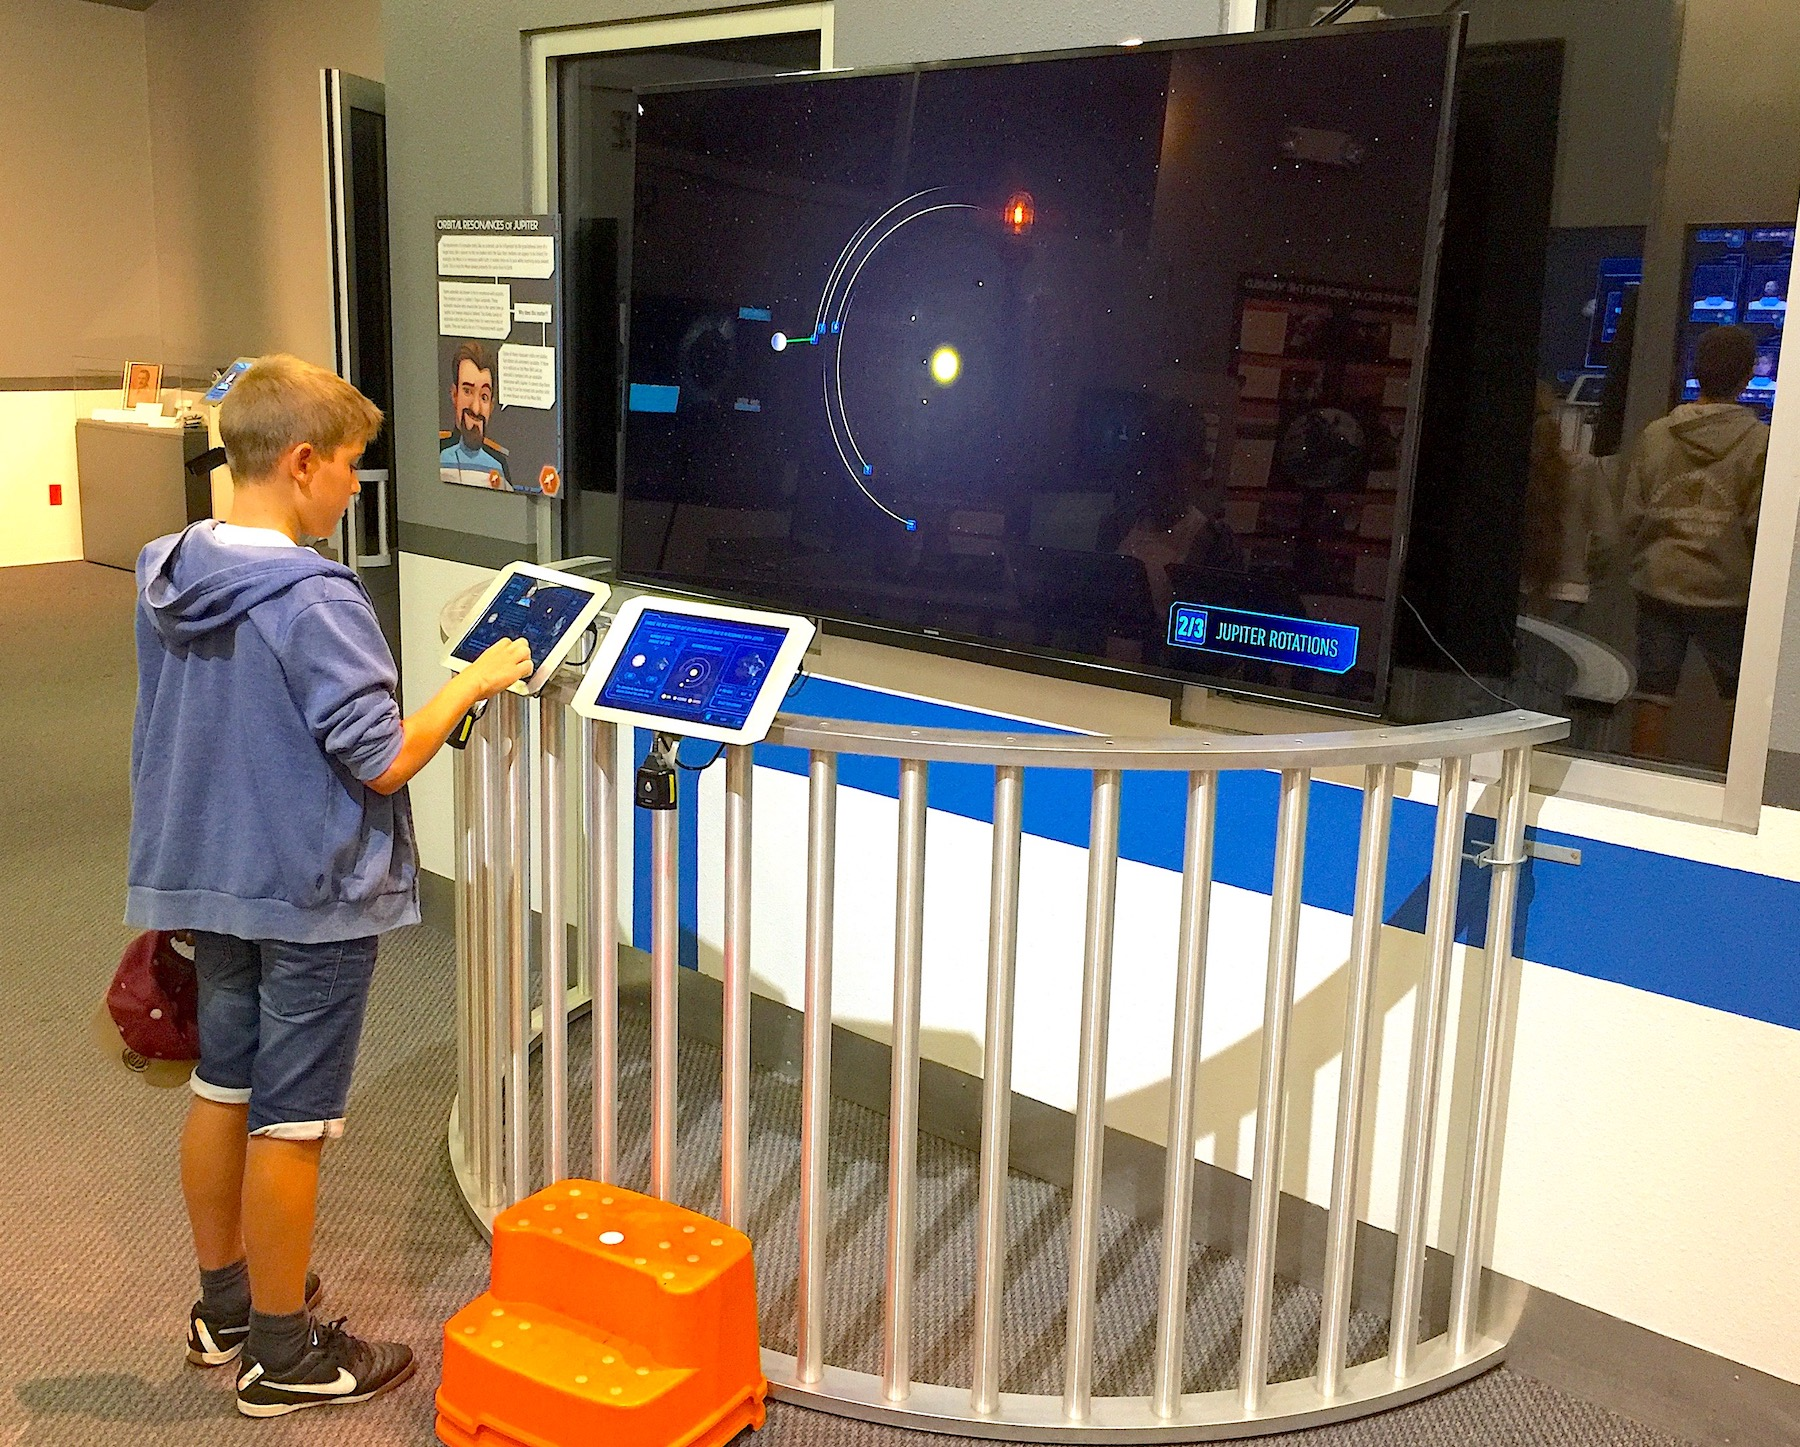 The interactive visitor center at the Lowell Observatory.